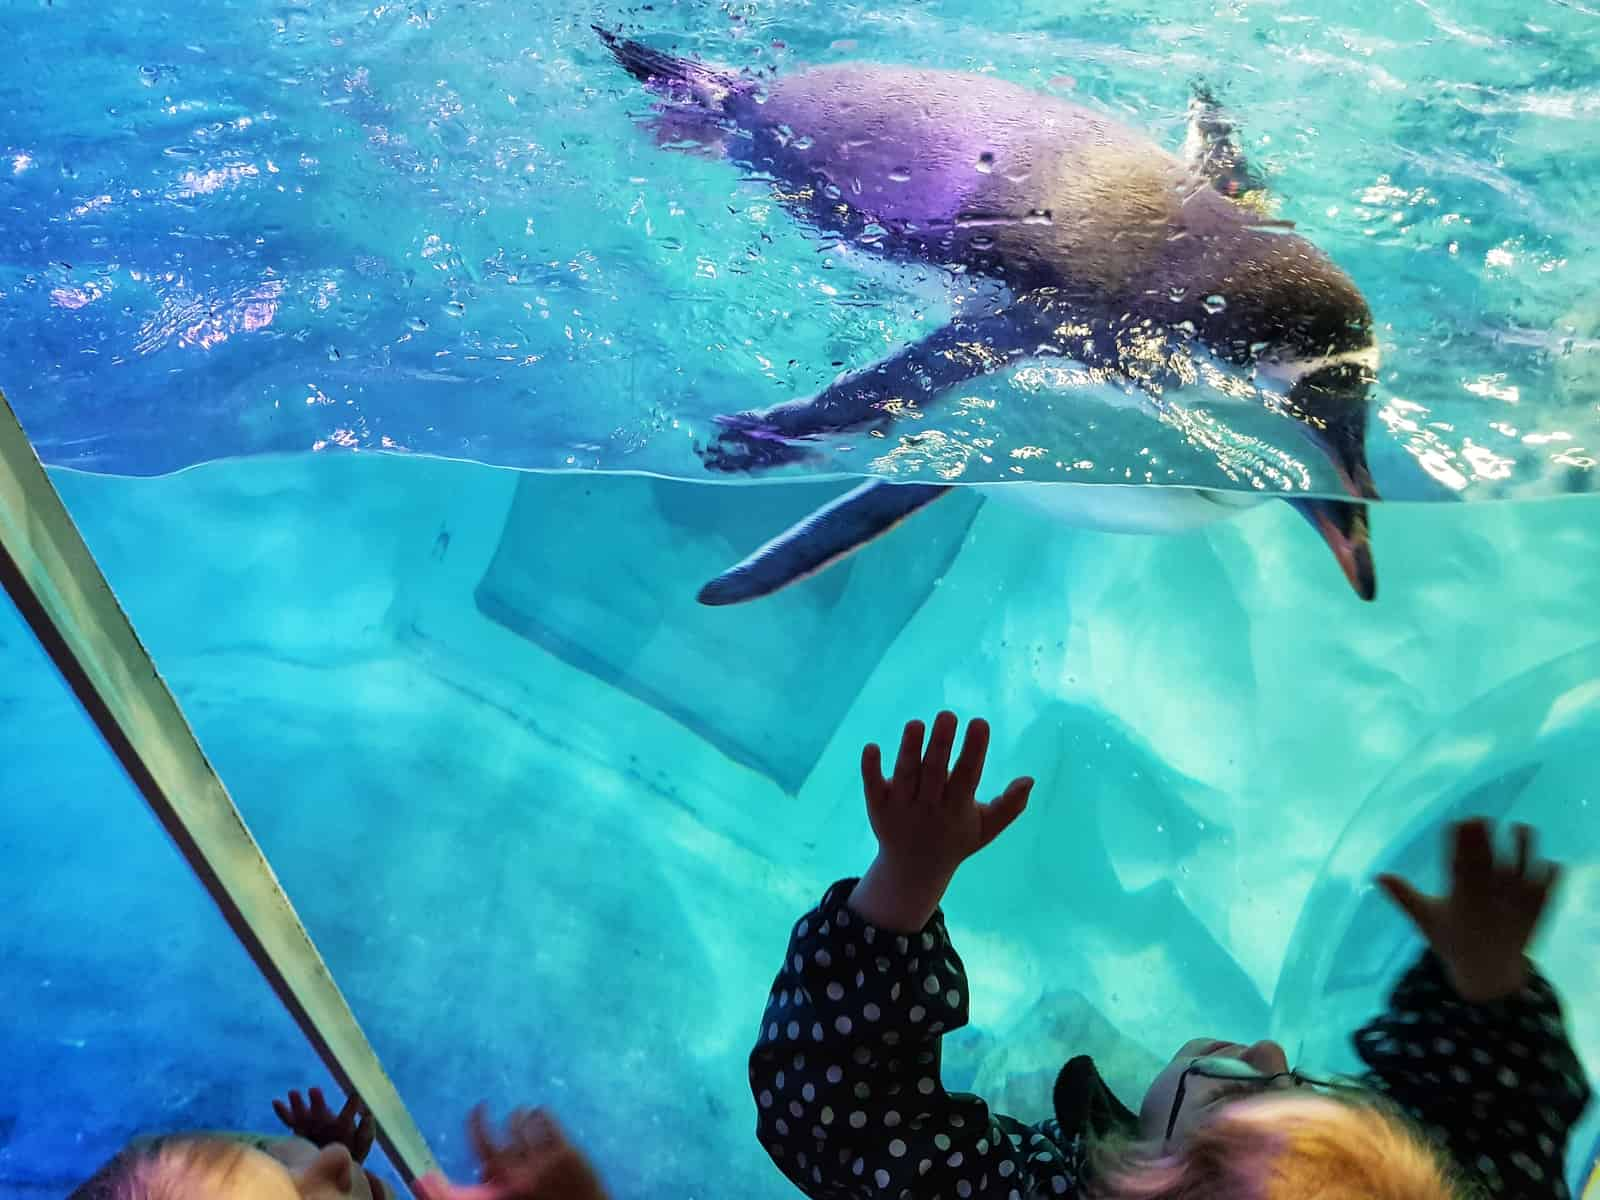 A child leaning up against the glass where a penguin swims in the water above her.